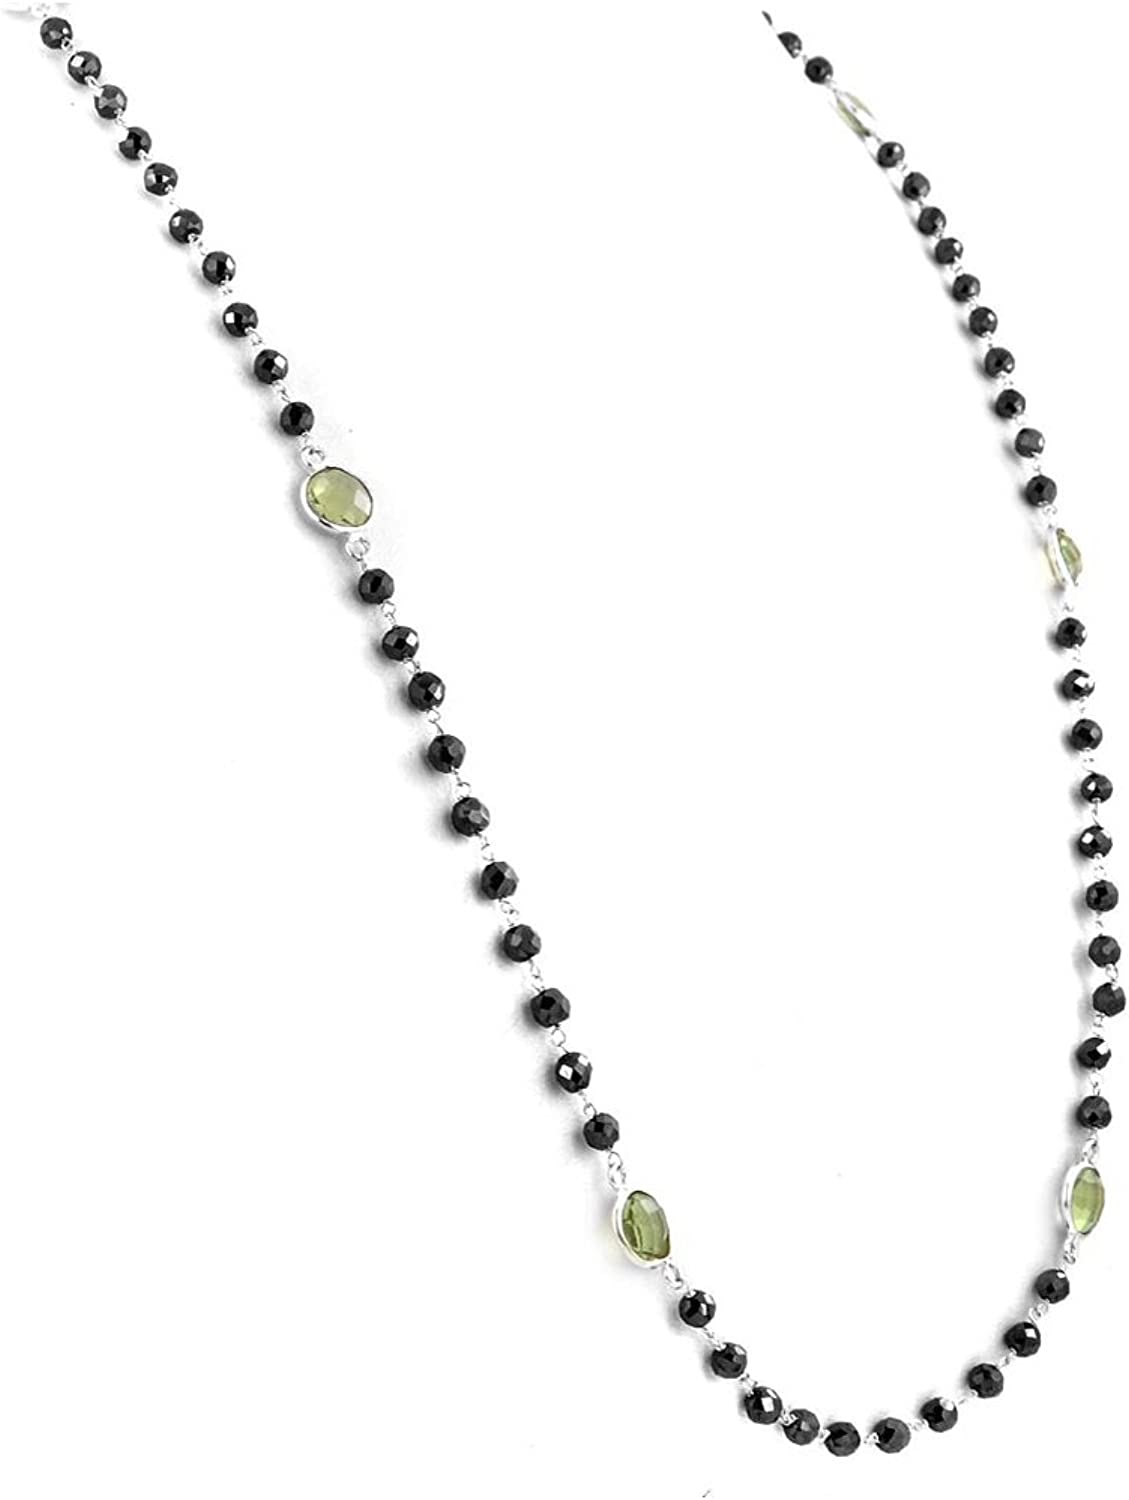 Skyjewels 32 inches, 3mm Black Diamond & Green Amethyst Beads Long Necklace